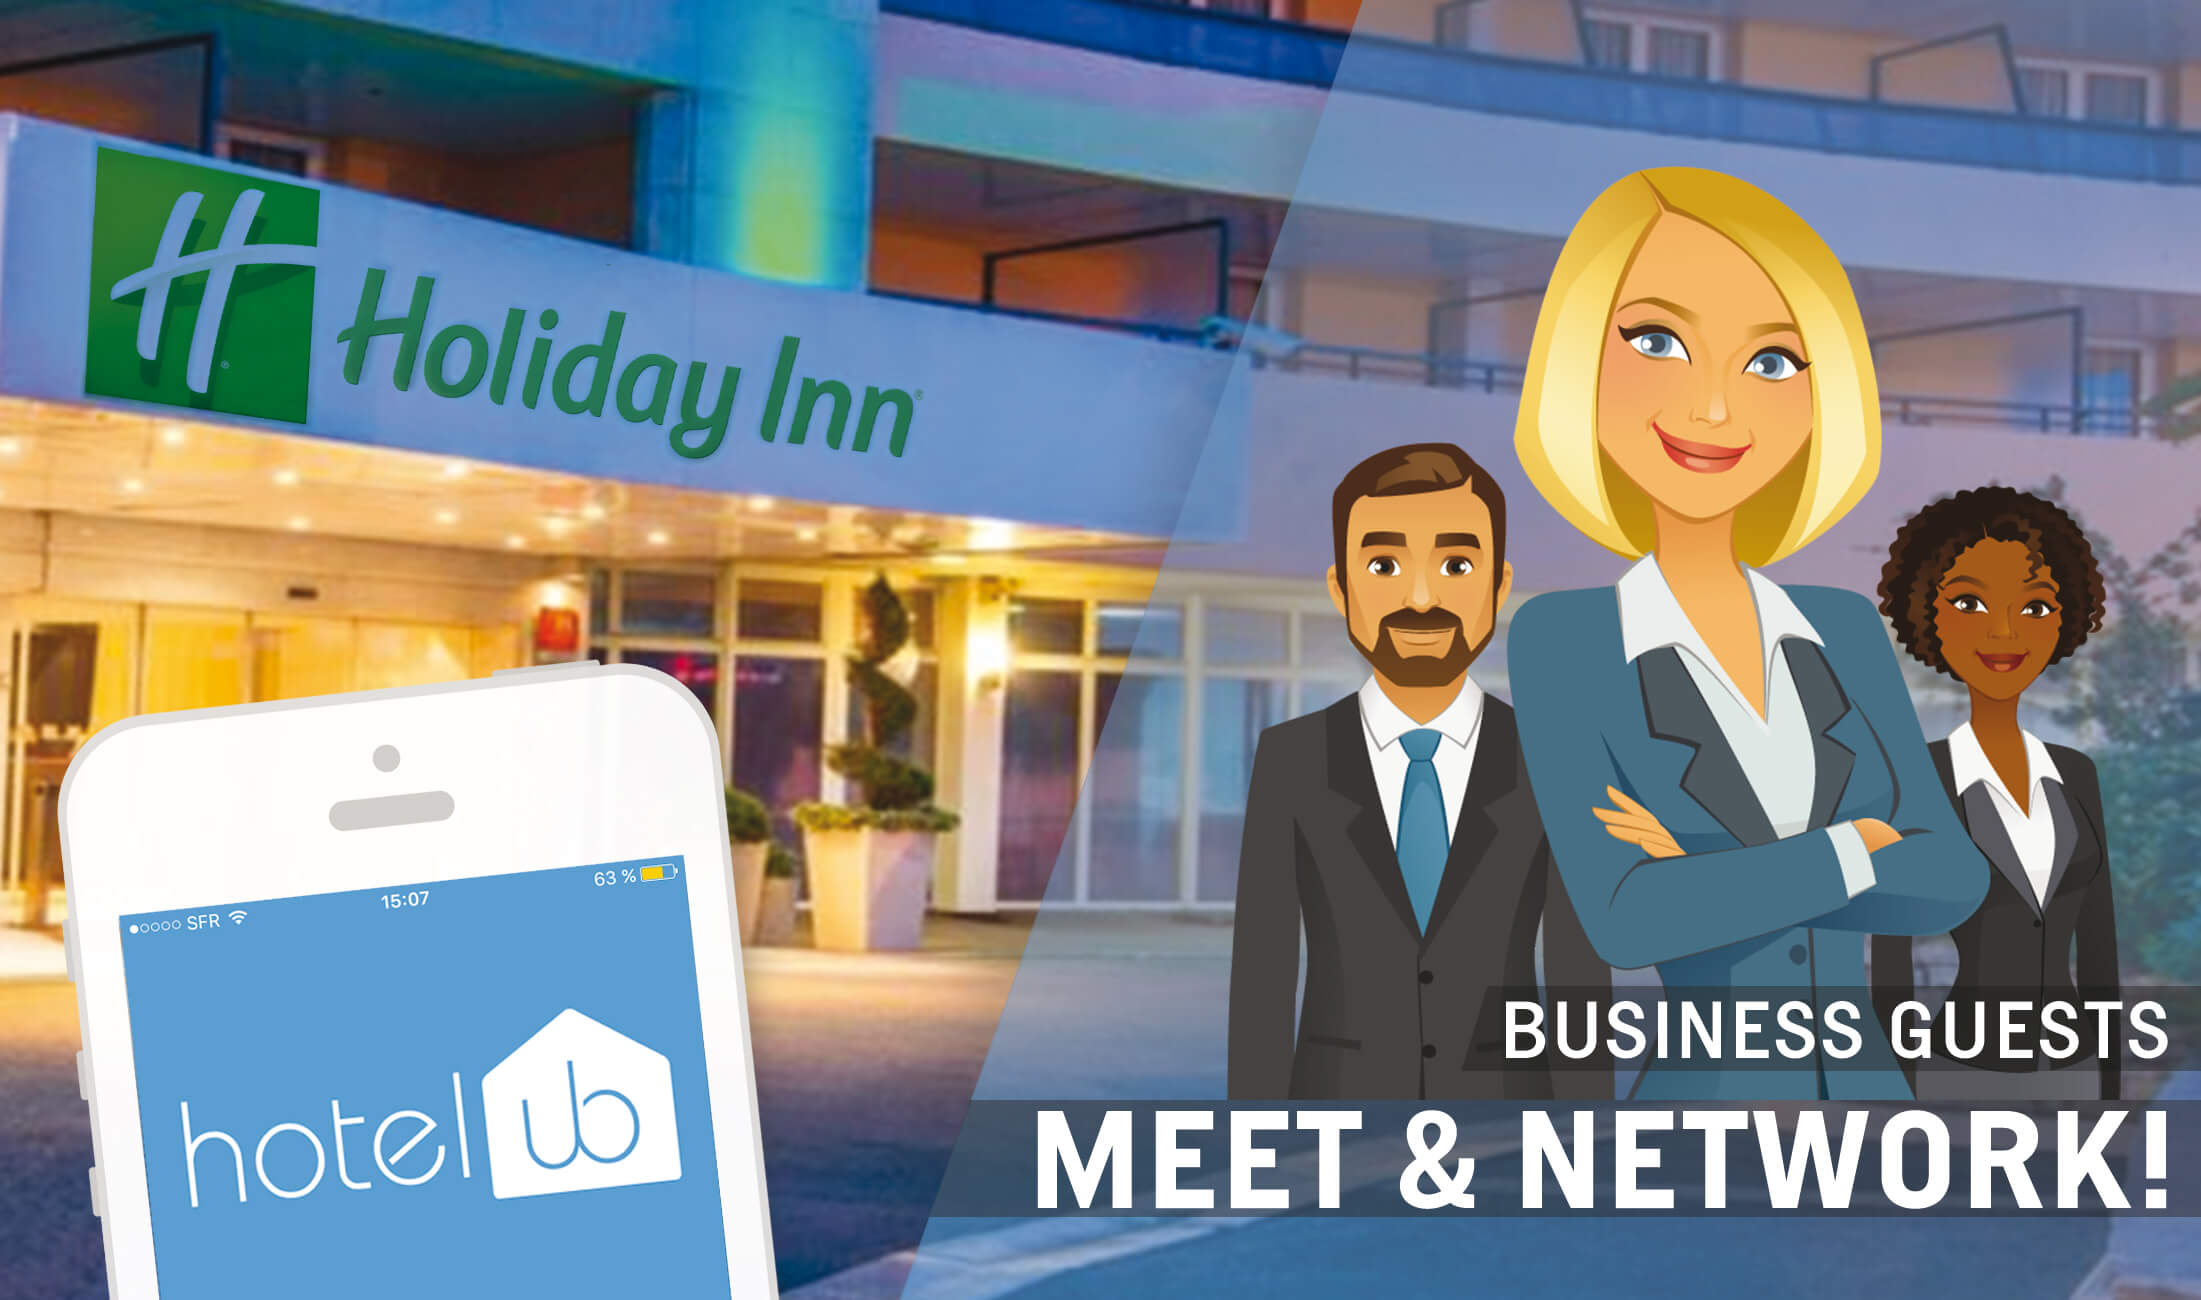 Holiday Inn connecte ses collaborateurs